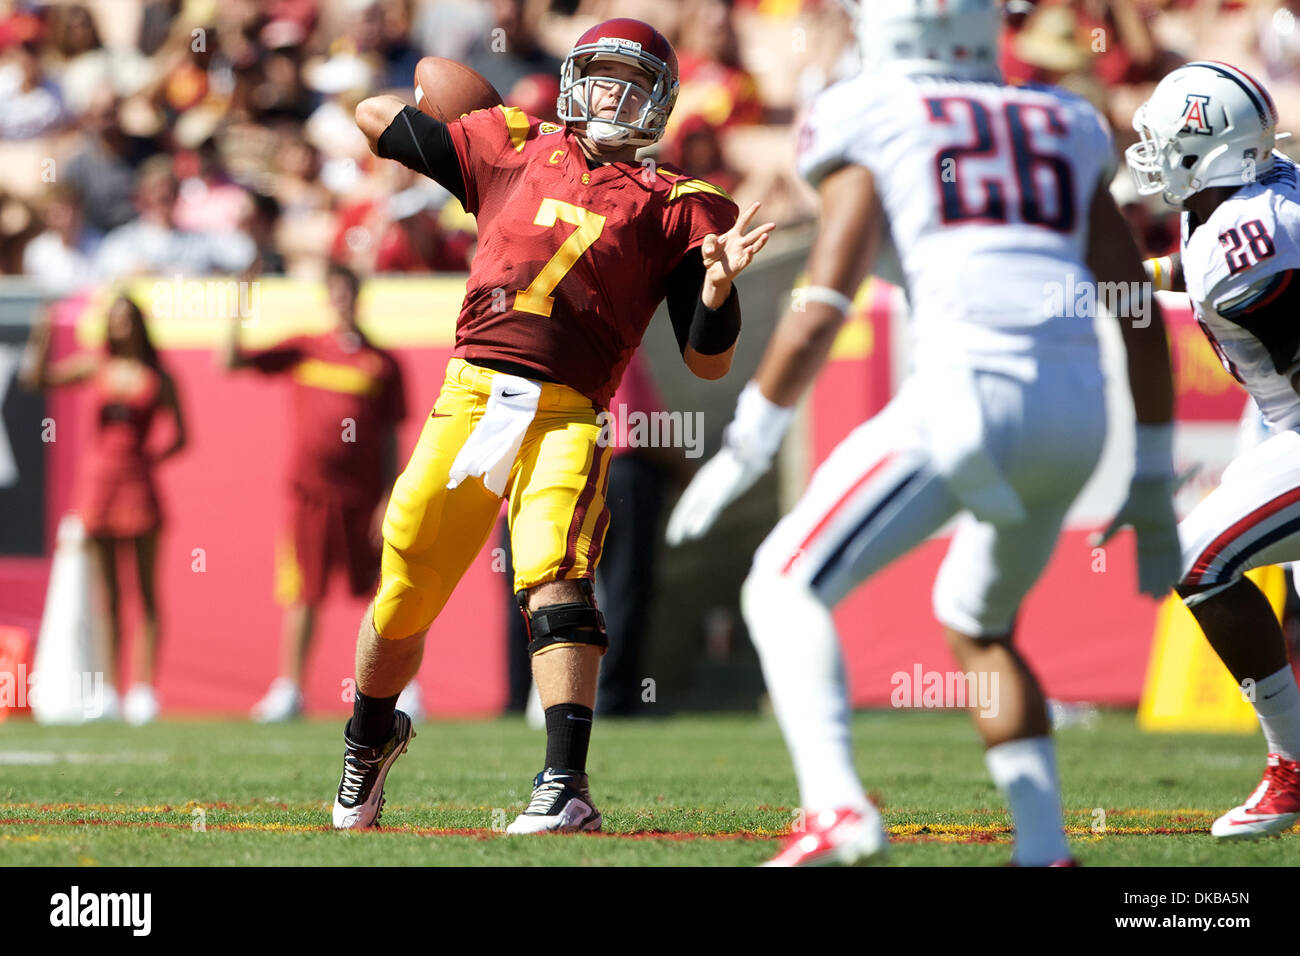 1 ottobre, 2011 - Los Angeles, California, Stati Uniti d'America - Quarterback Matt Barkley (7), dell'USC Trojans scende di nuovo a passare nel secondo trimestre, durante una Pac-12 match up tra la visita in Arizona Wildcats e la University of Southern California Trojans presso il Los Angeles Memorial Coliseum di Los Angeles, California. Il Trojan sconfitto Wildcats 48-41 per impr Immagini Stock